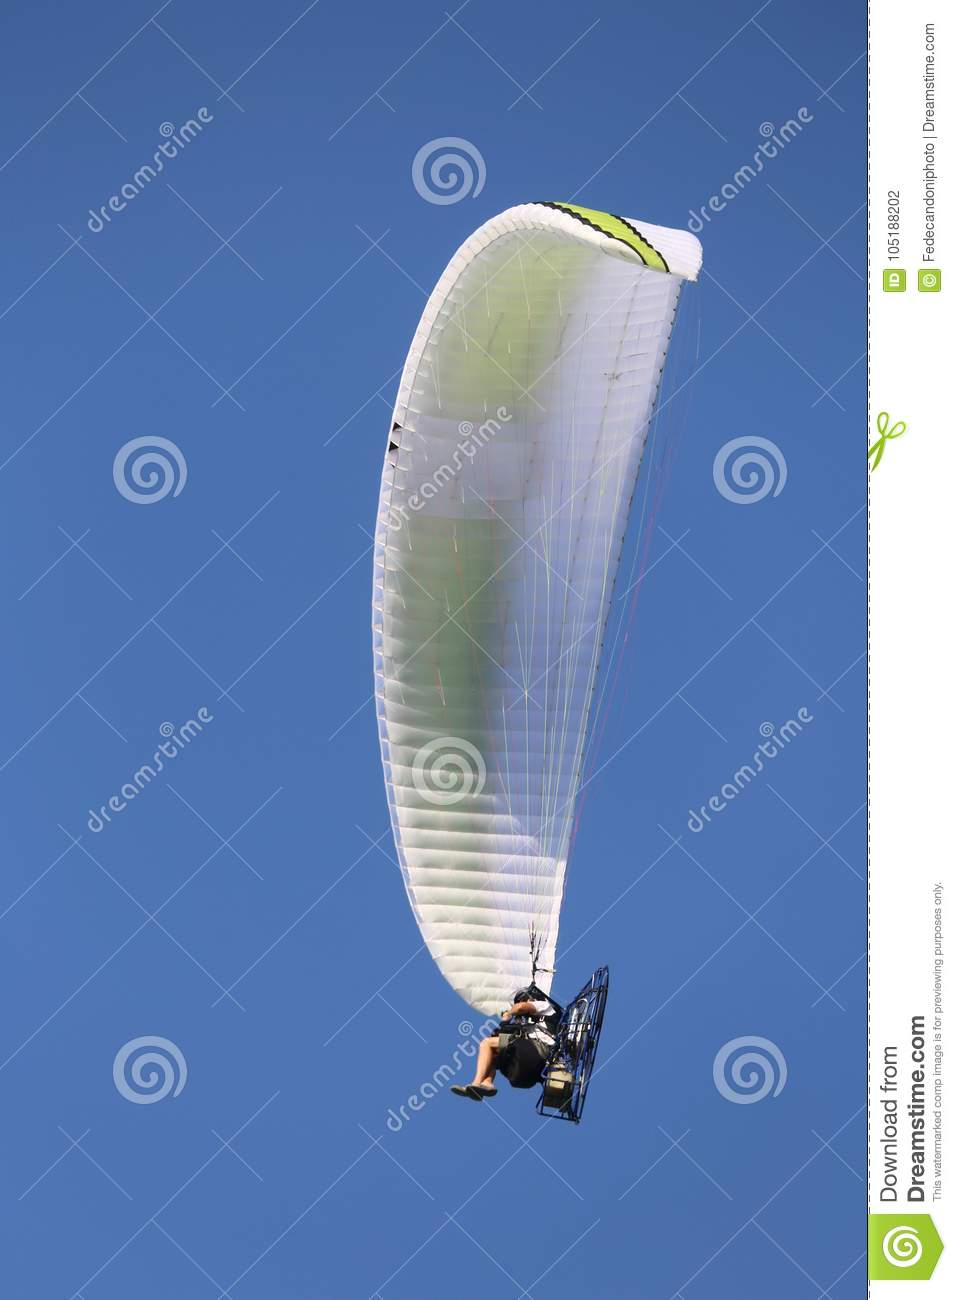 Powered Hang Glider Flies High In The Blue Sky With A Person Sit